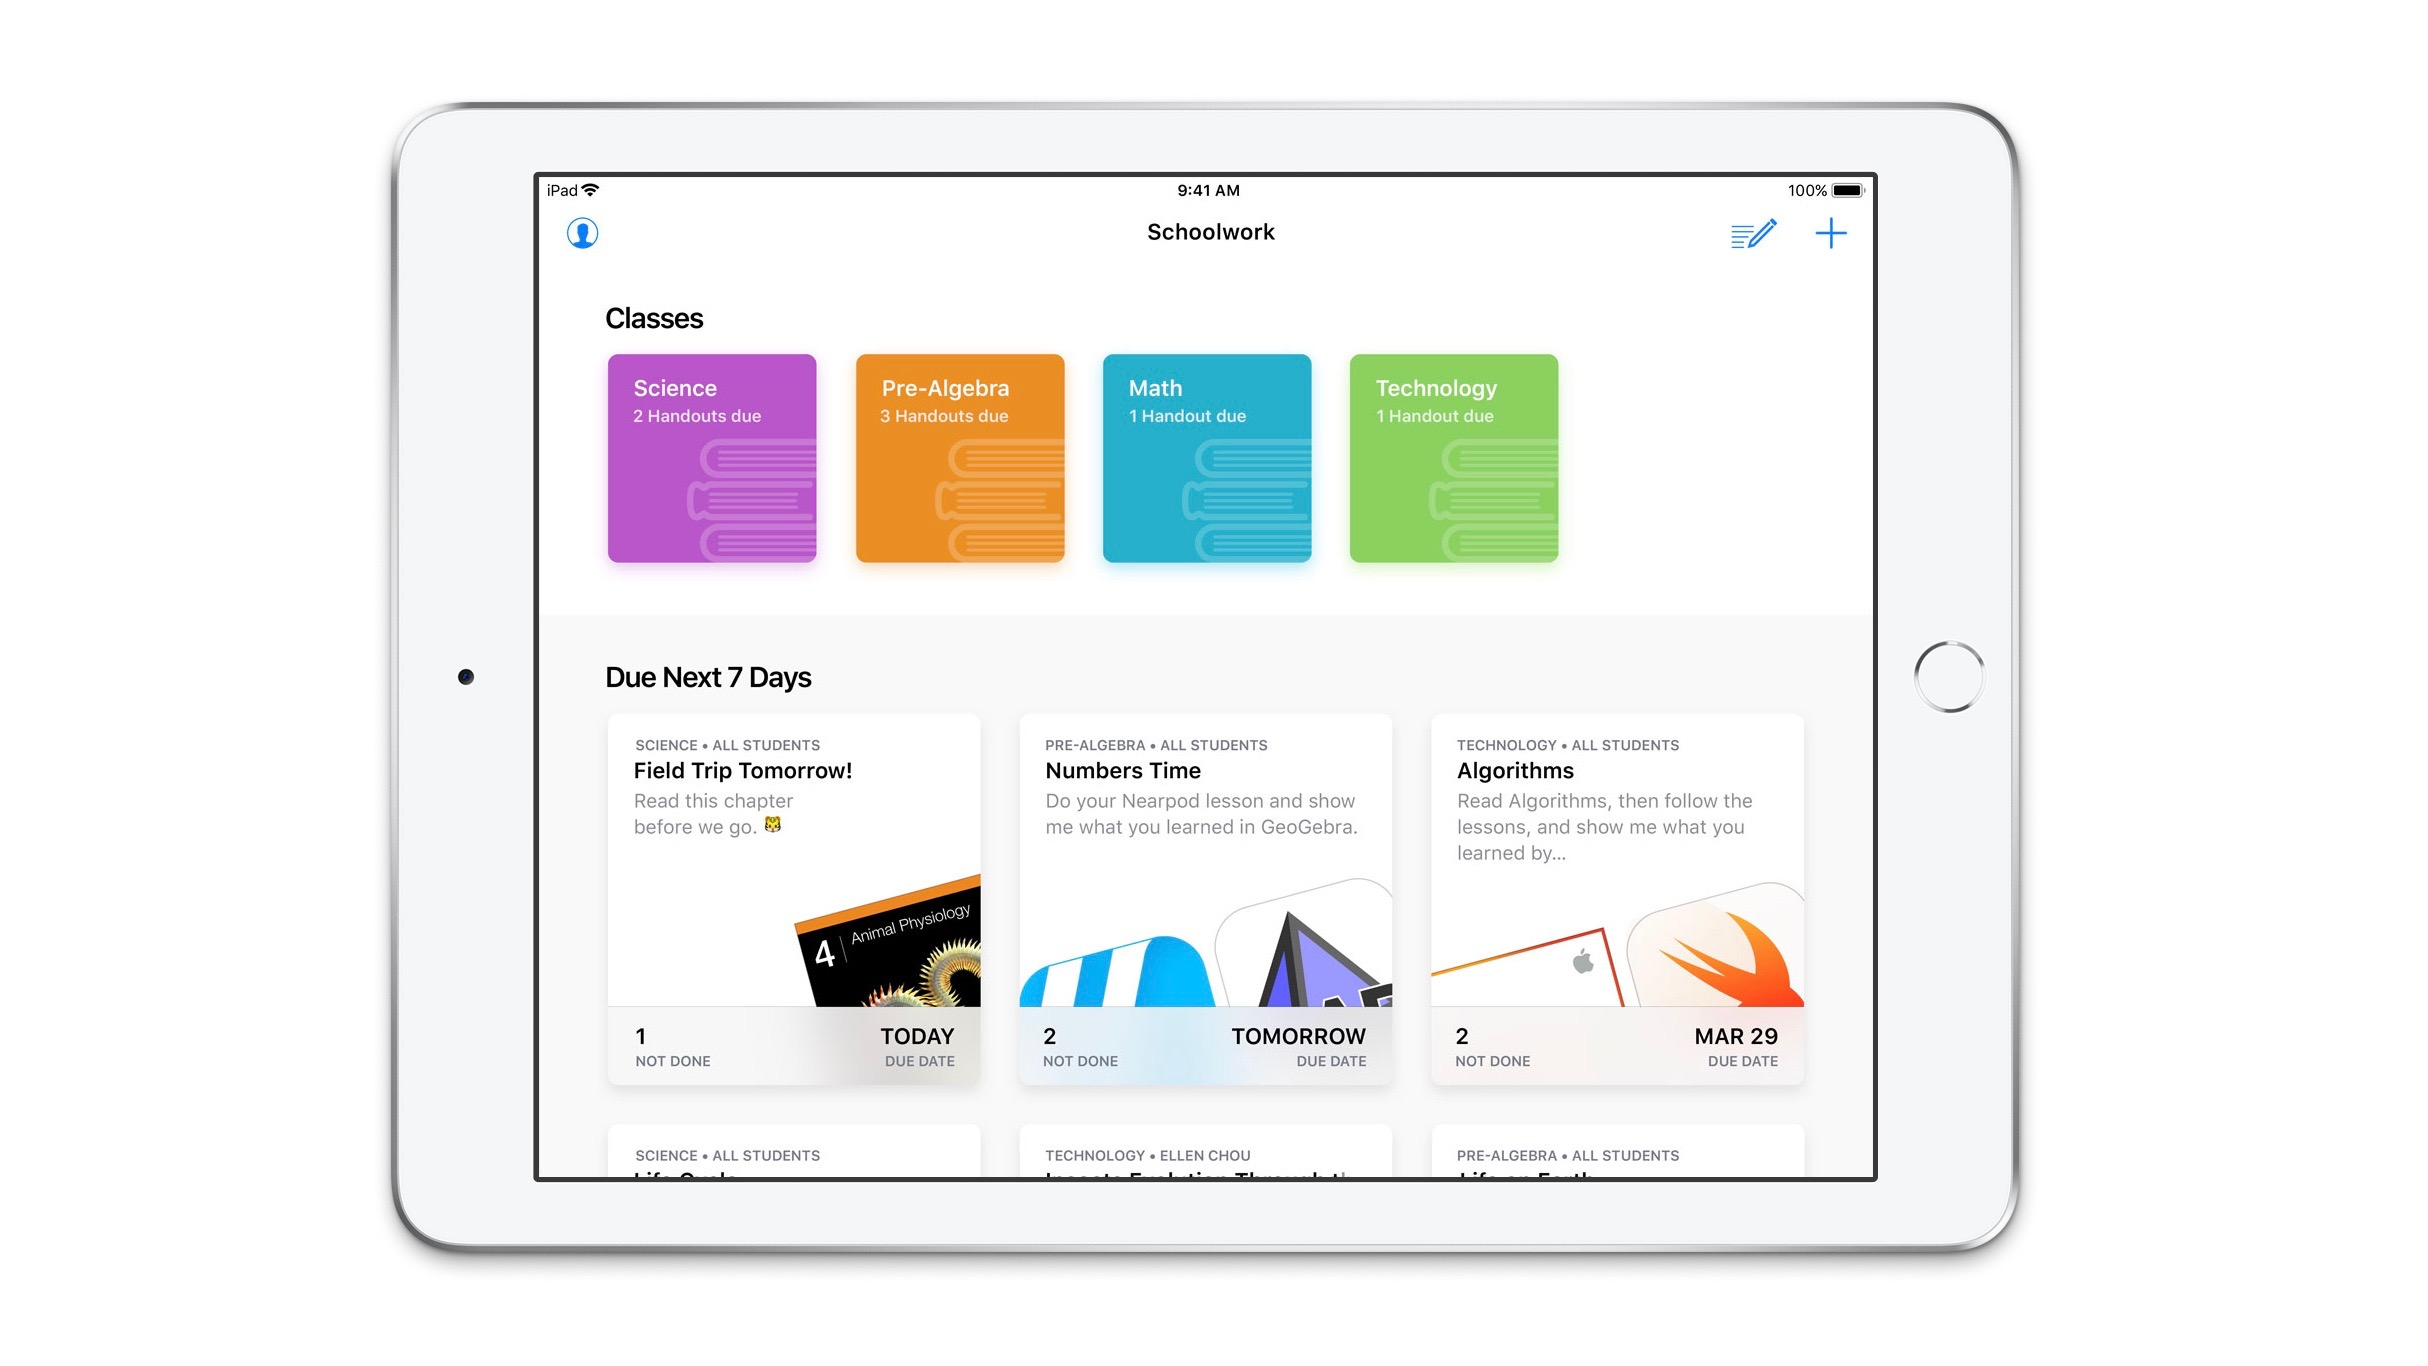 Hands-on with Apple's new Schoolwork app on iPad [Gallery]